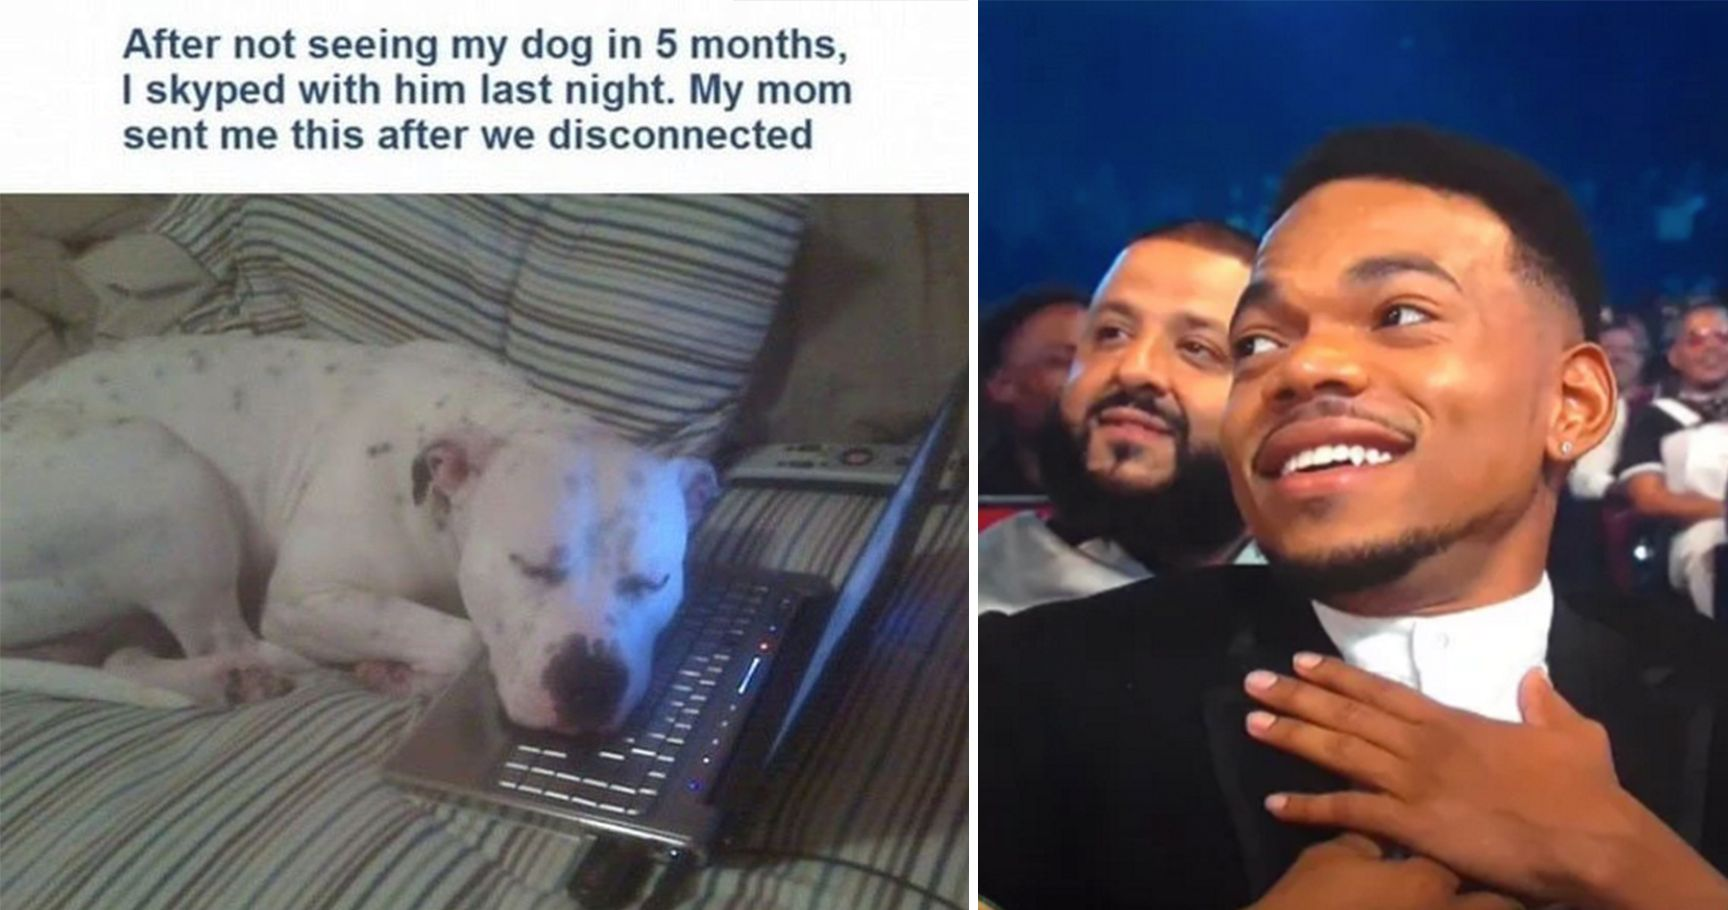 18 Times Dogs Were Just Too Good For Us